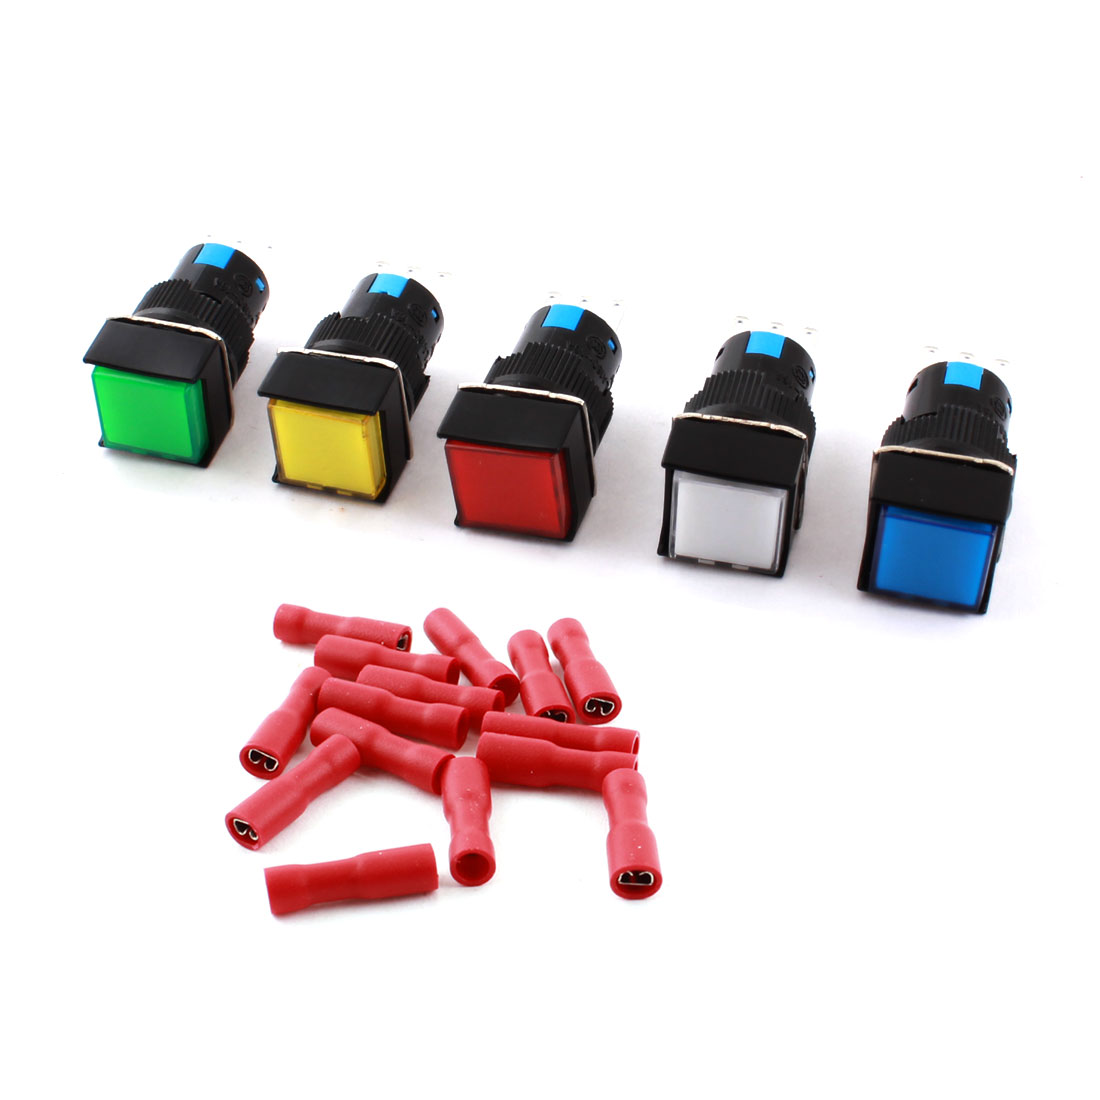 5pcs AC 250V 5A Momentary Square Push Button Switch w Spade Connector